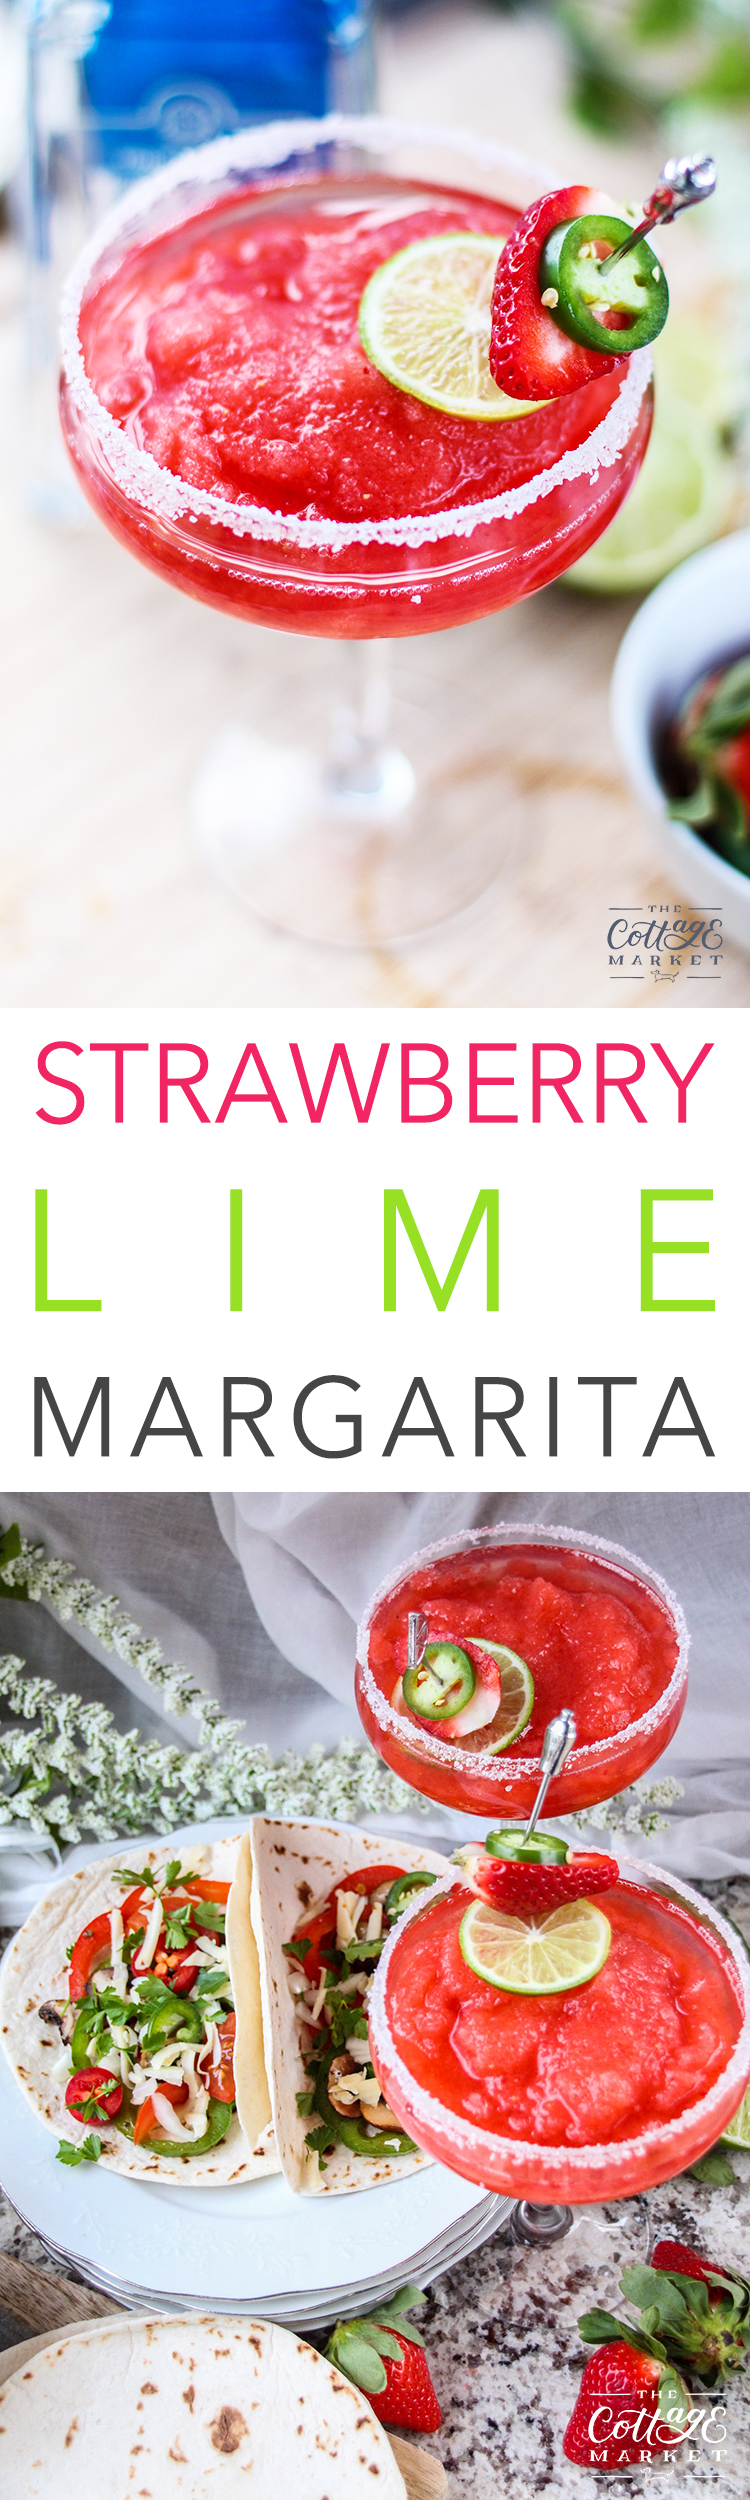 http://thecottagemarket.com/wp-content/uploads/2017/04/Strawberry-Lime-Margarita-TOWER-1.jpg